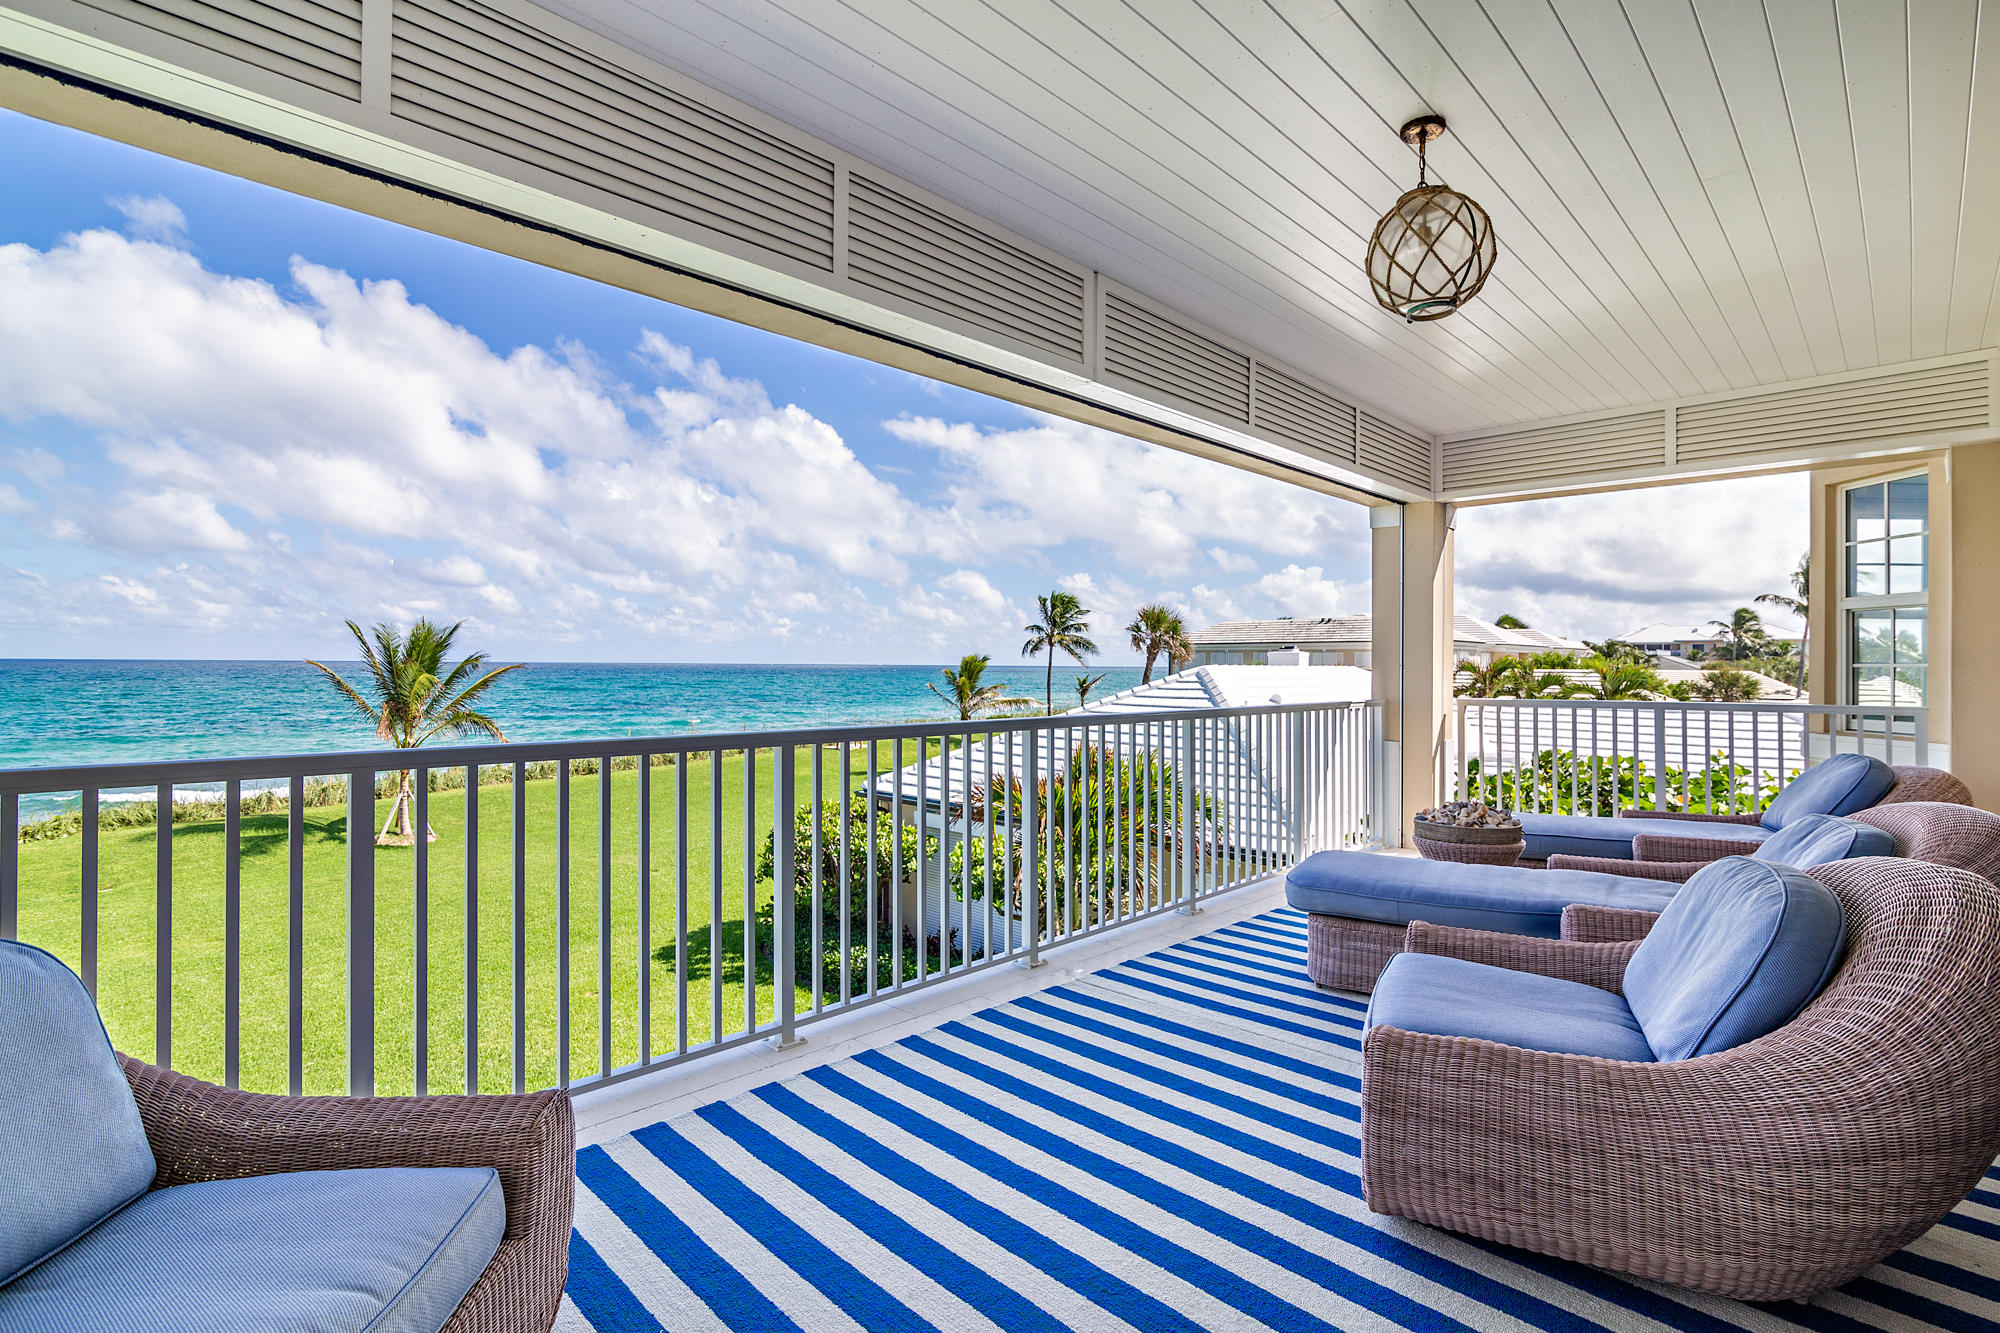 New Home for sale at 11354 Turtle Beach Road in North Palm Beach